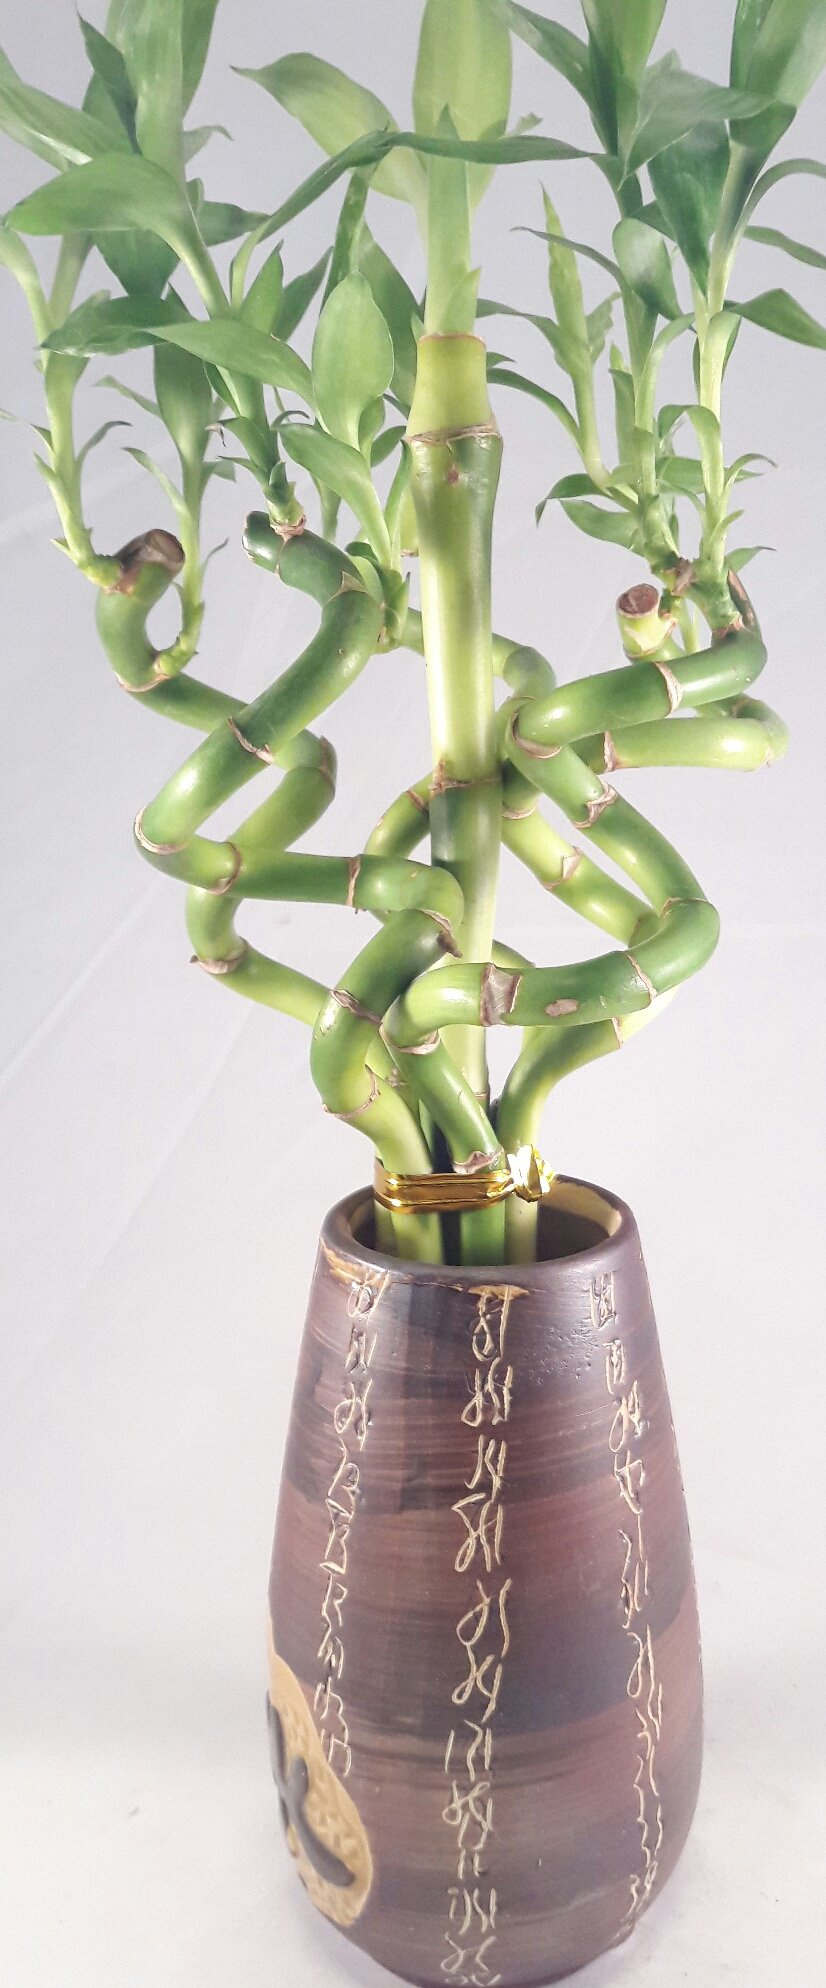 Jmbamboo - Live Spiral 6 Style Lucky Bamboo Plant Arrangement w/ Ceramic Vase unique from Jmbamboo